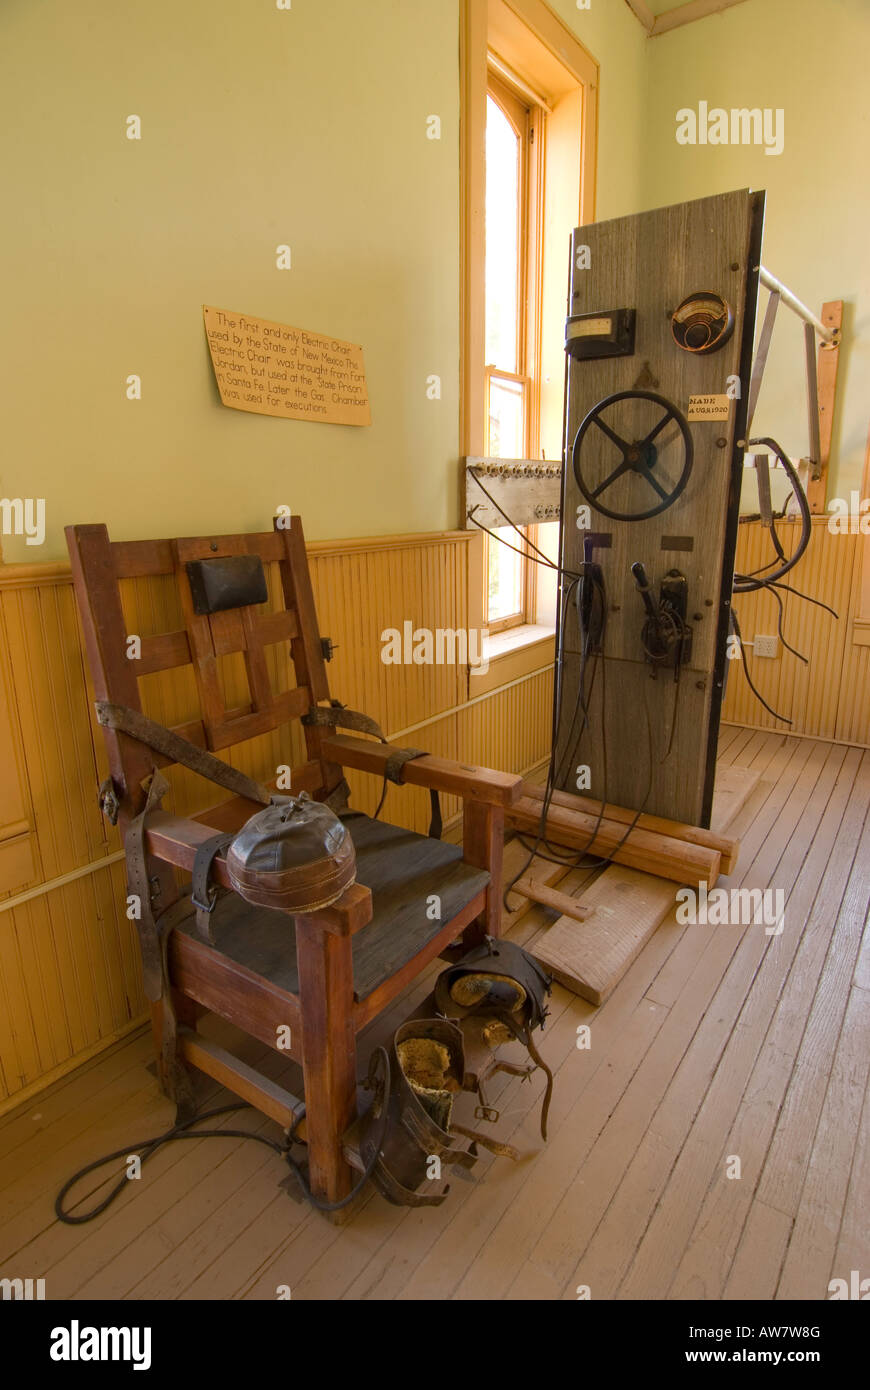 Electric Chair Execution Stock Photos & Electric Chair